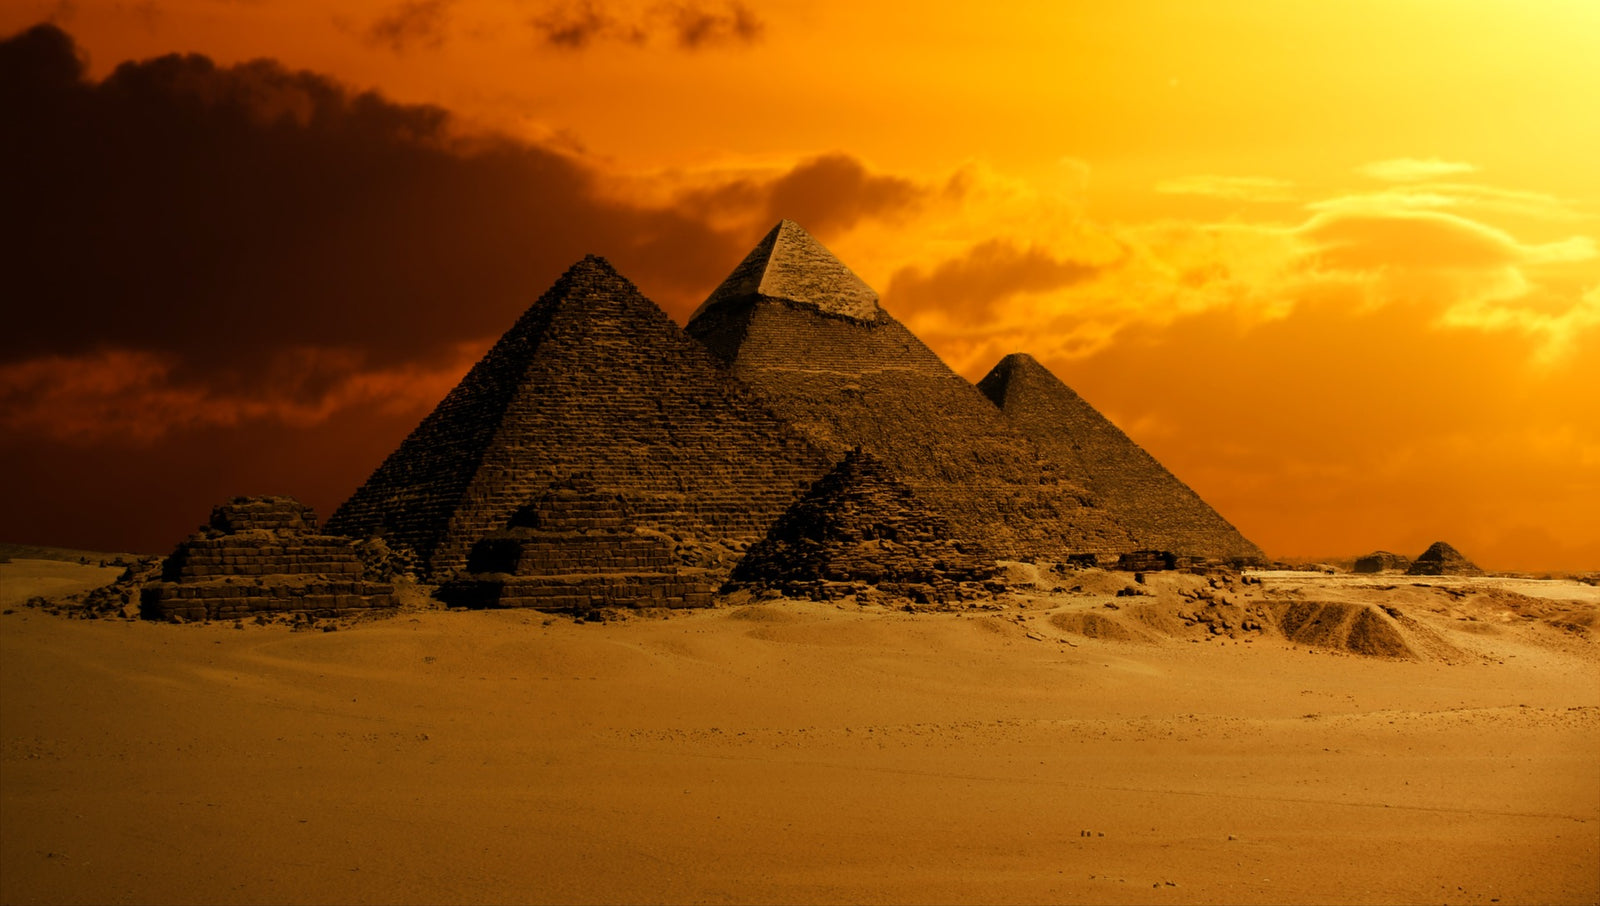 Phi, Pi and the Geometry Behind the Great Pyramid - PHIDLE